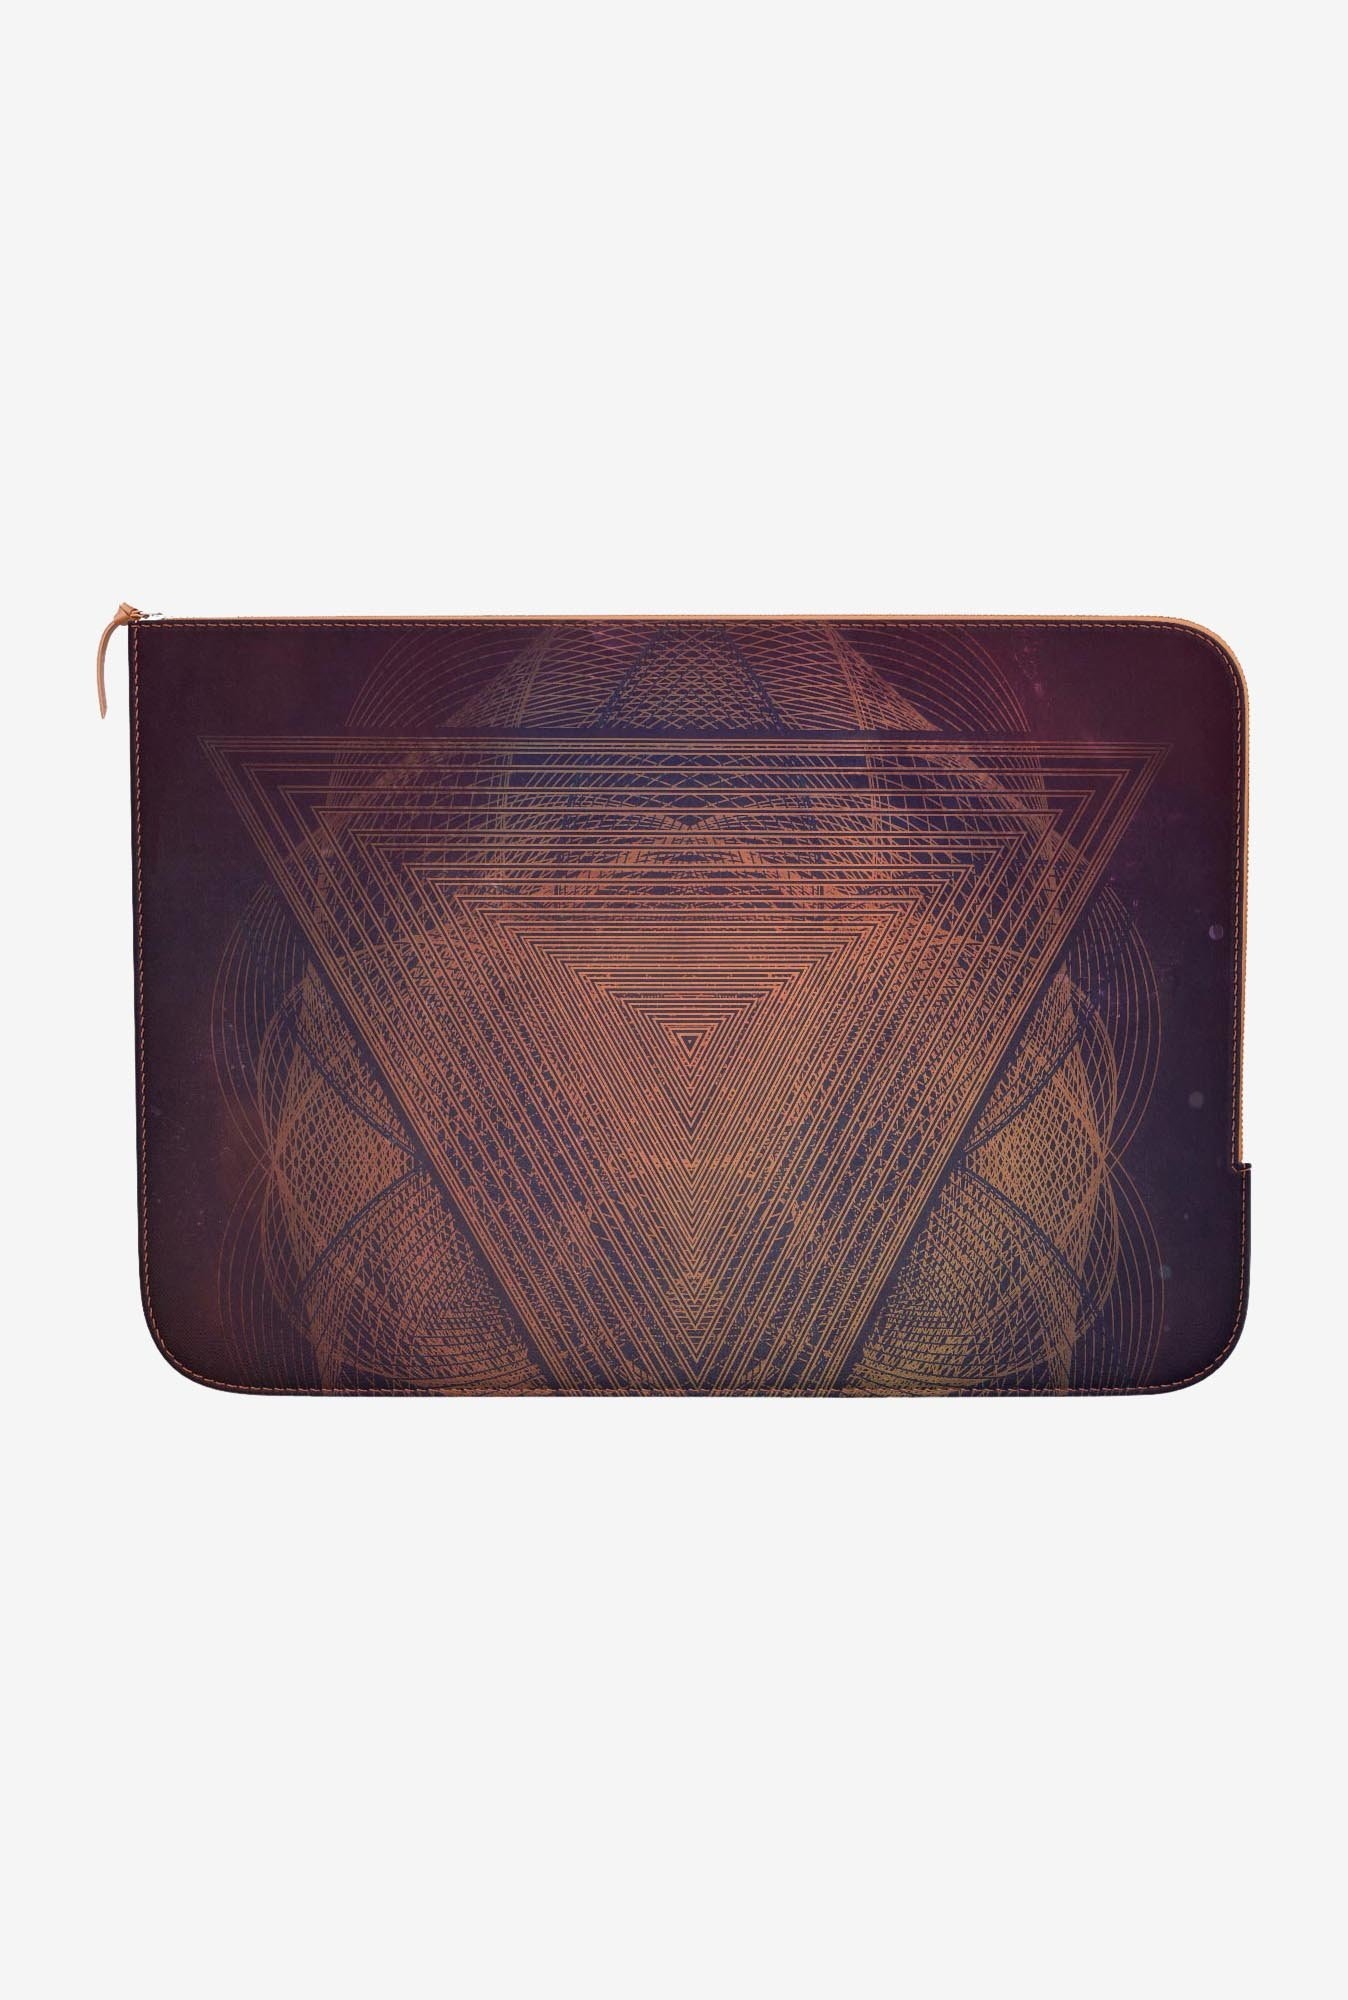 "DailyObjects Syyrce Macbook Pro 15"" Zippered Sleeve"